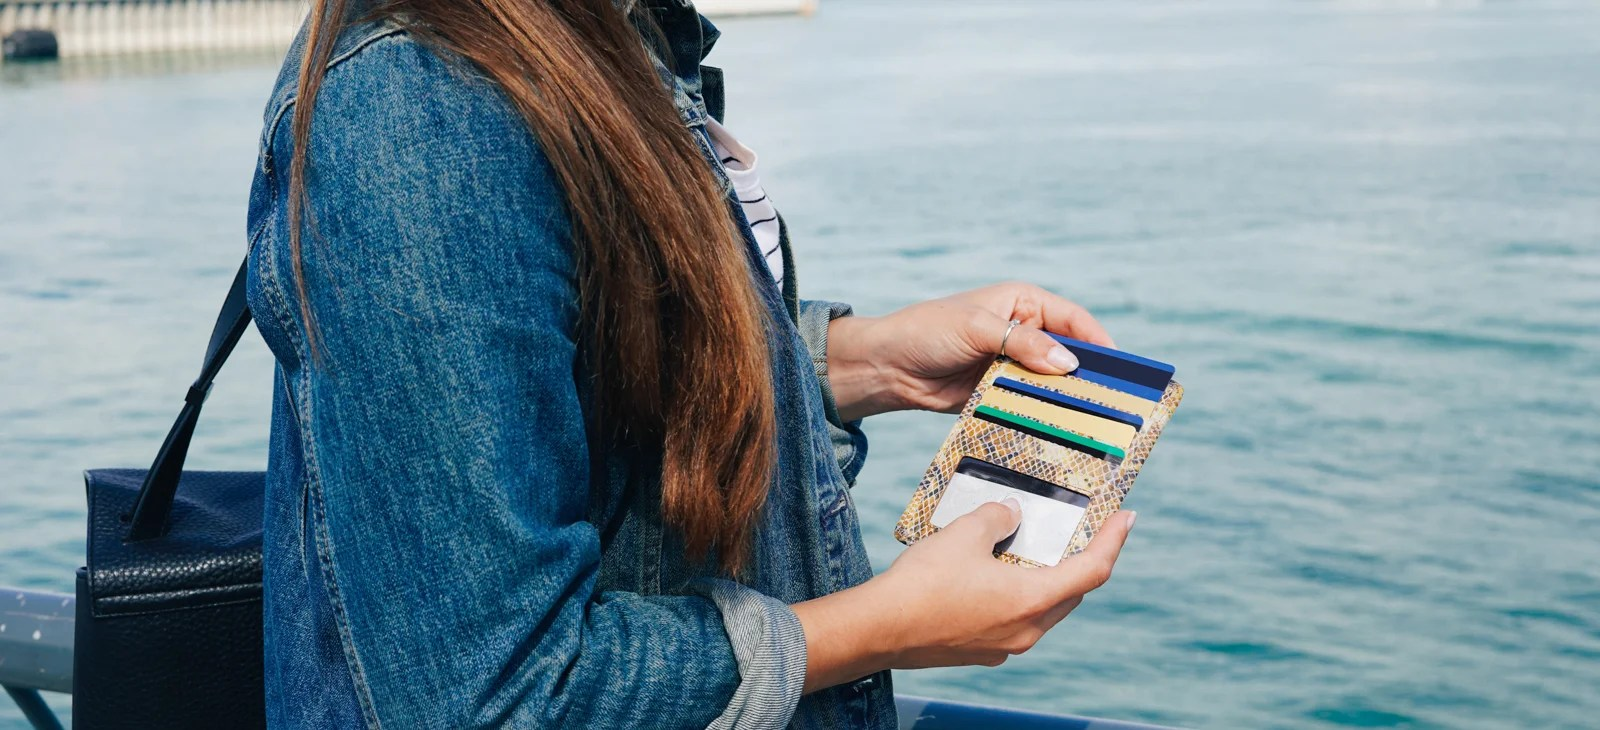 TPG reader credit card question: What premium credit card should I use for all spending?